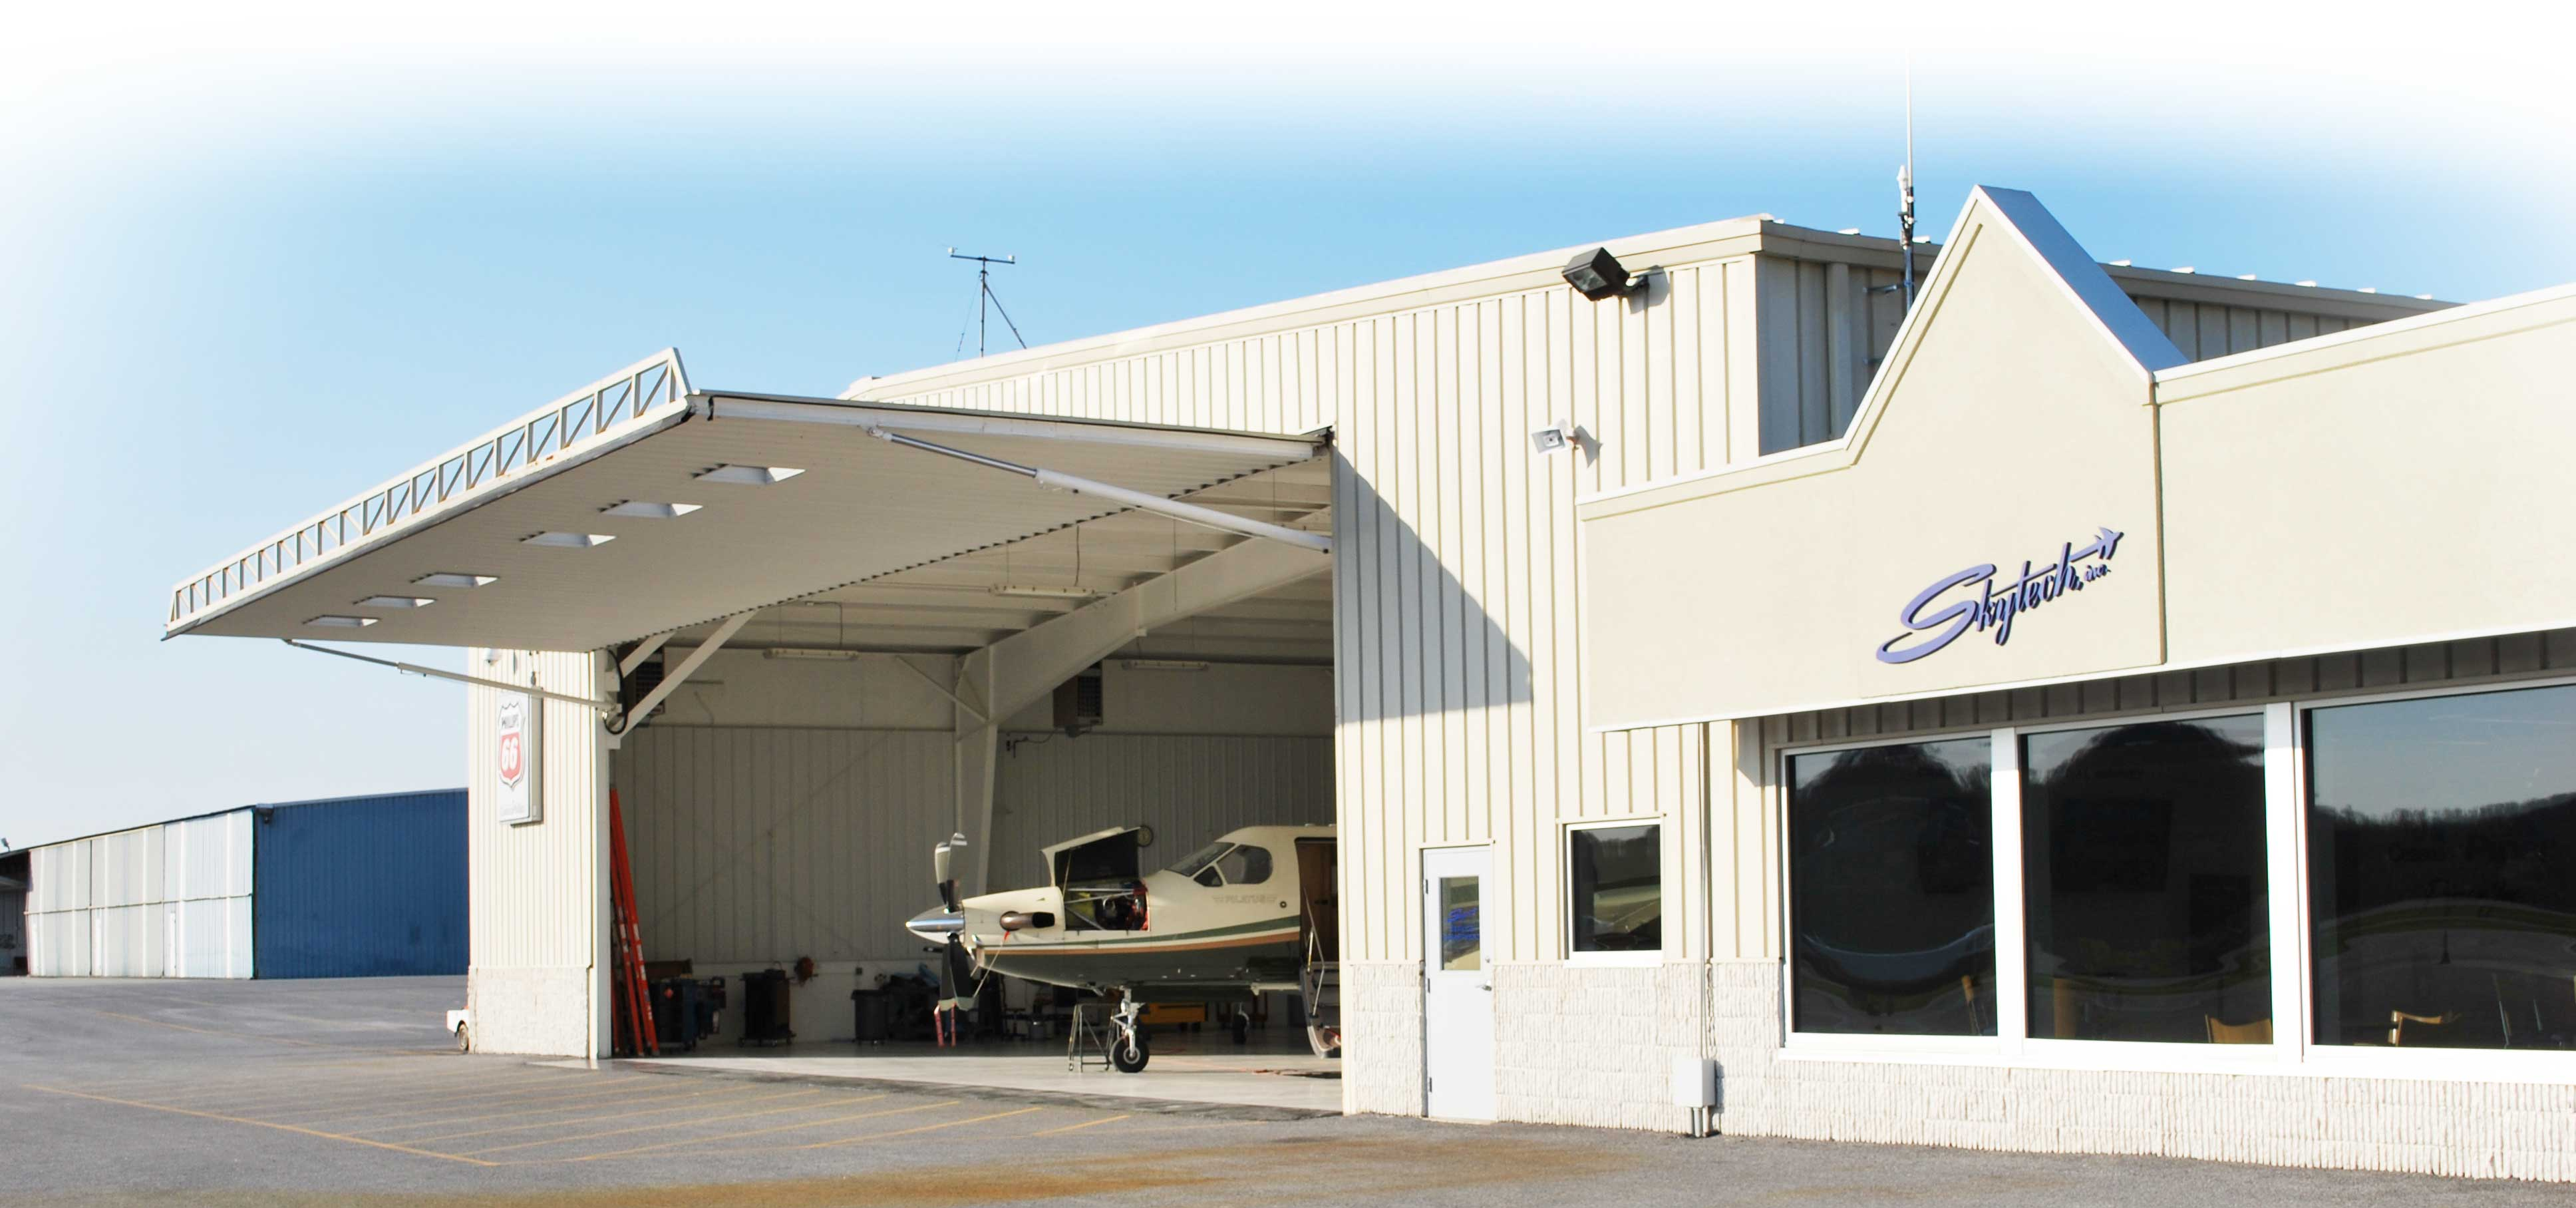 skytech hangar with plane